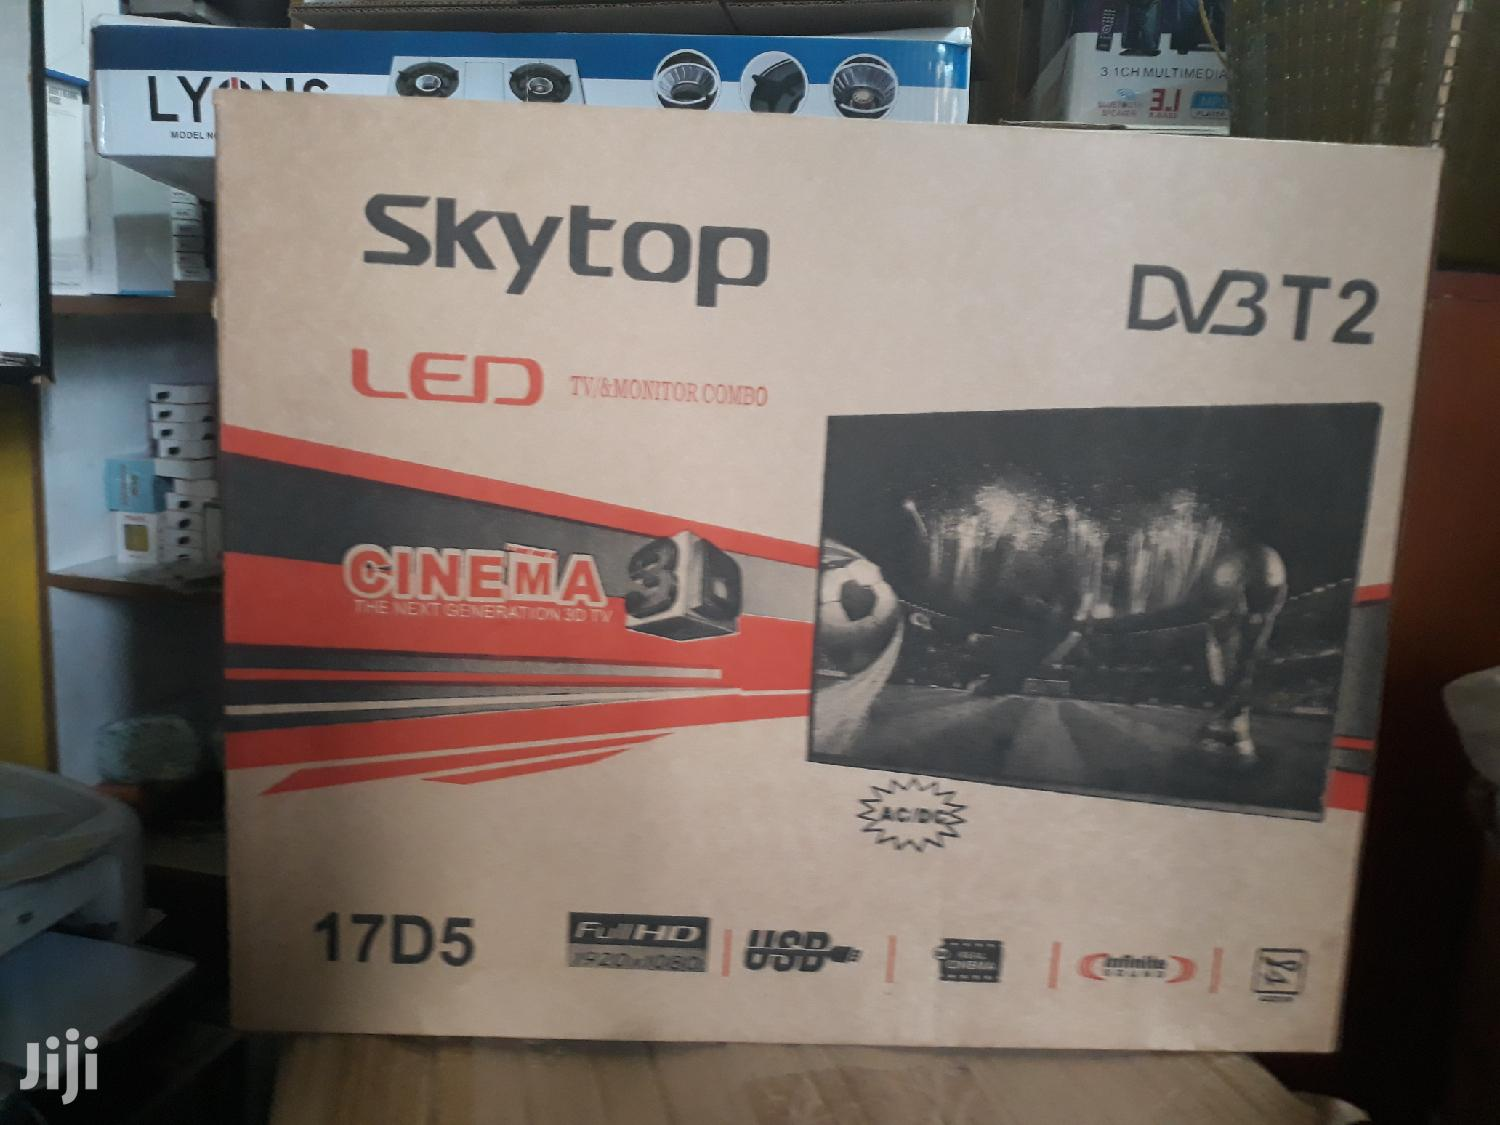 17 Inch Digital Tv With Free to Air Inbuilt Decoder | TV & DVD Equipment for sale in Nairobi Central, Nairobi, Kenya